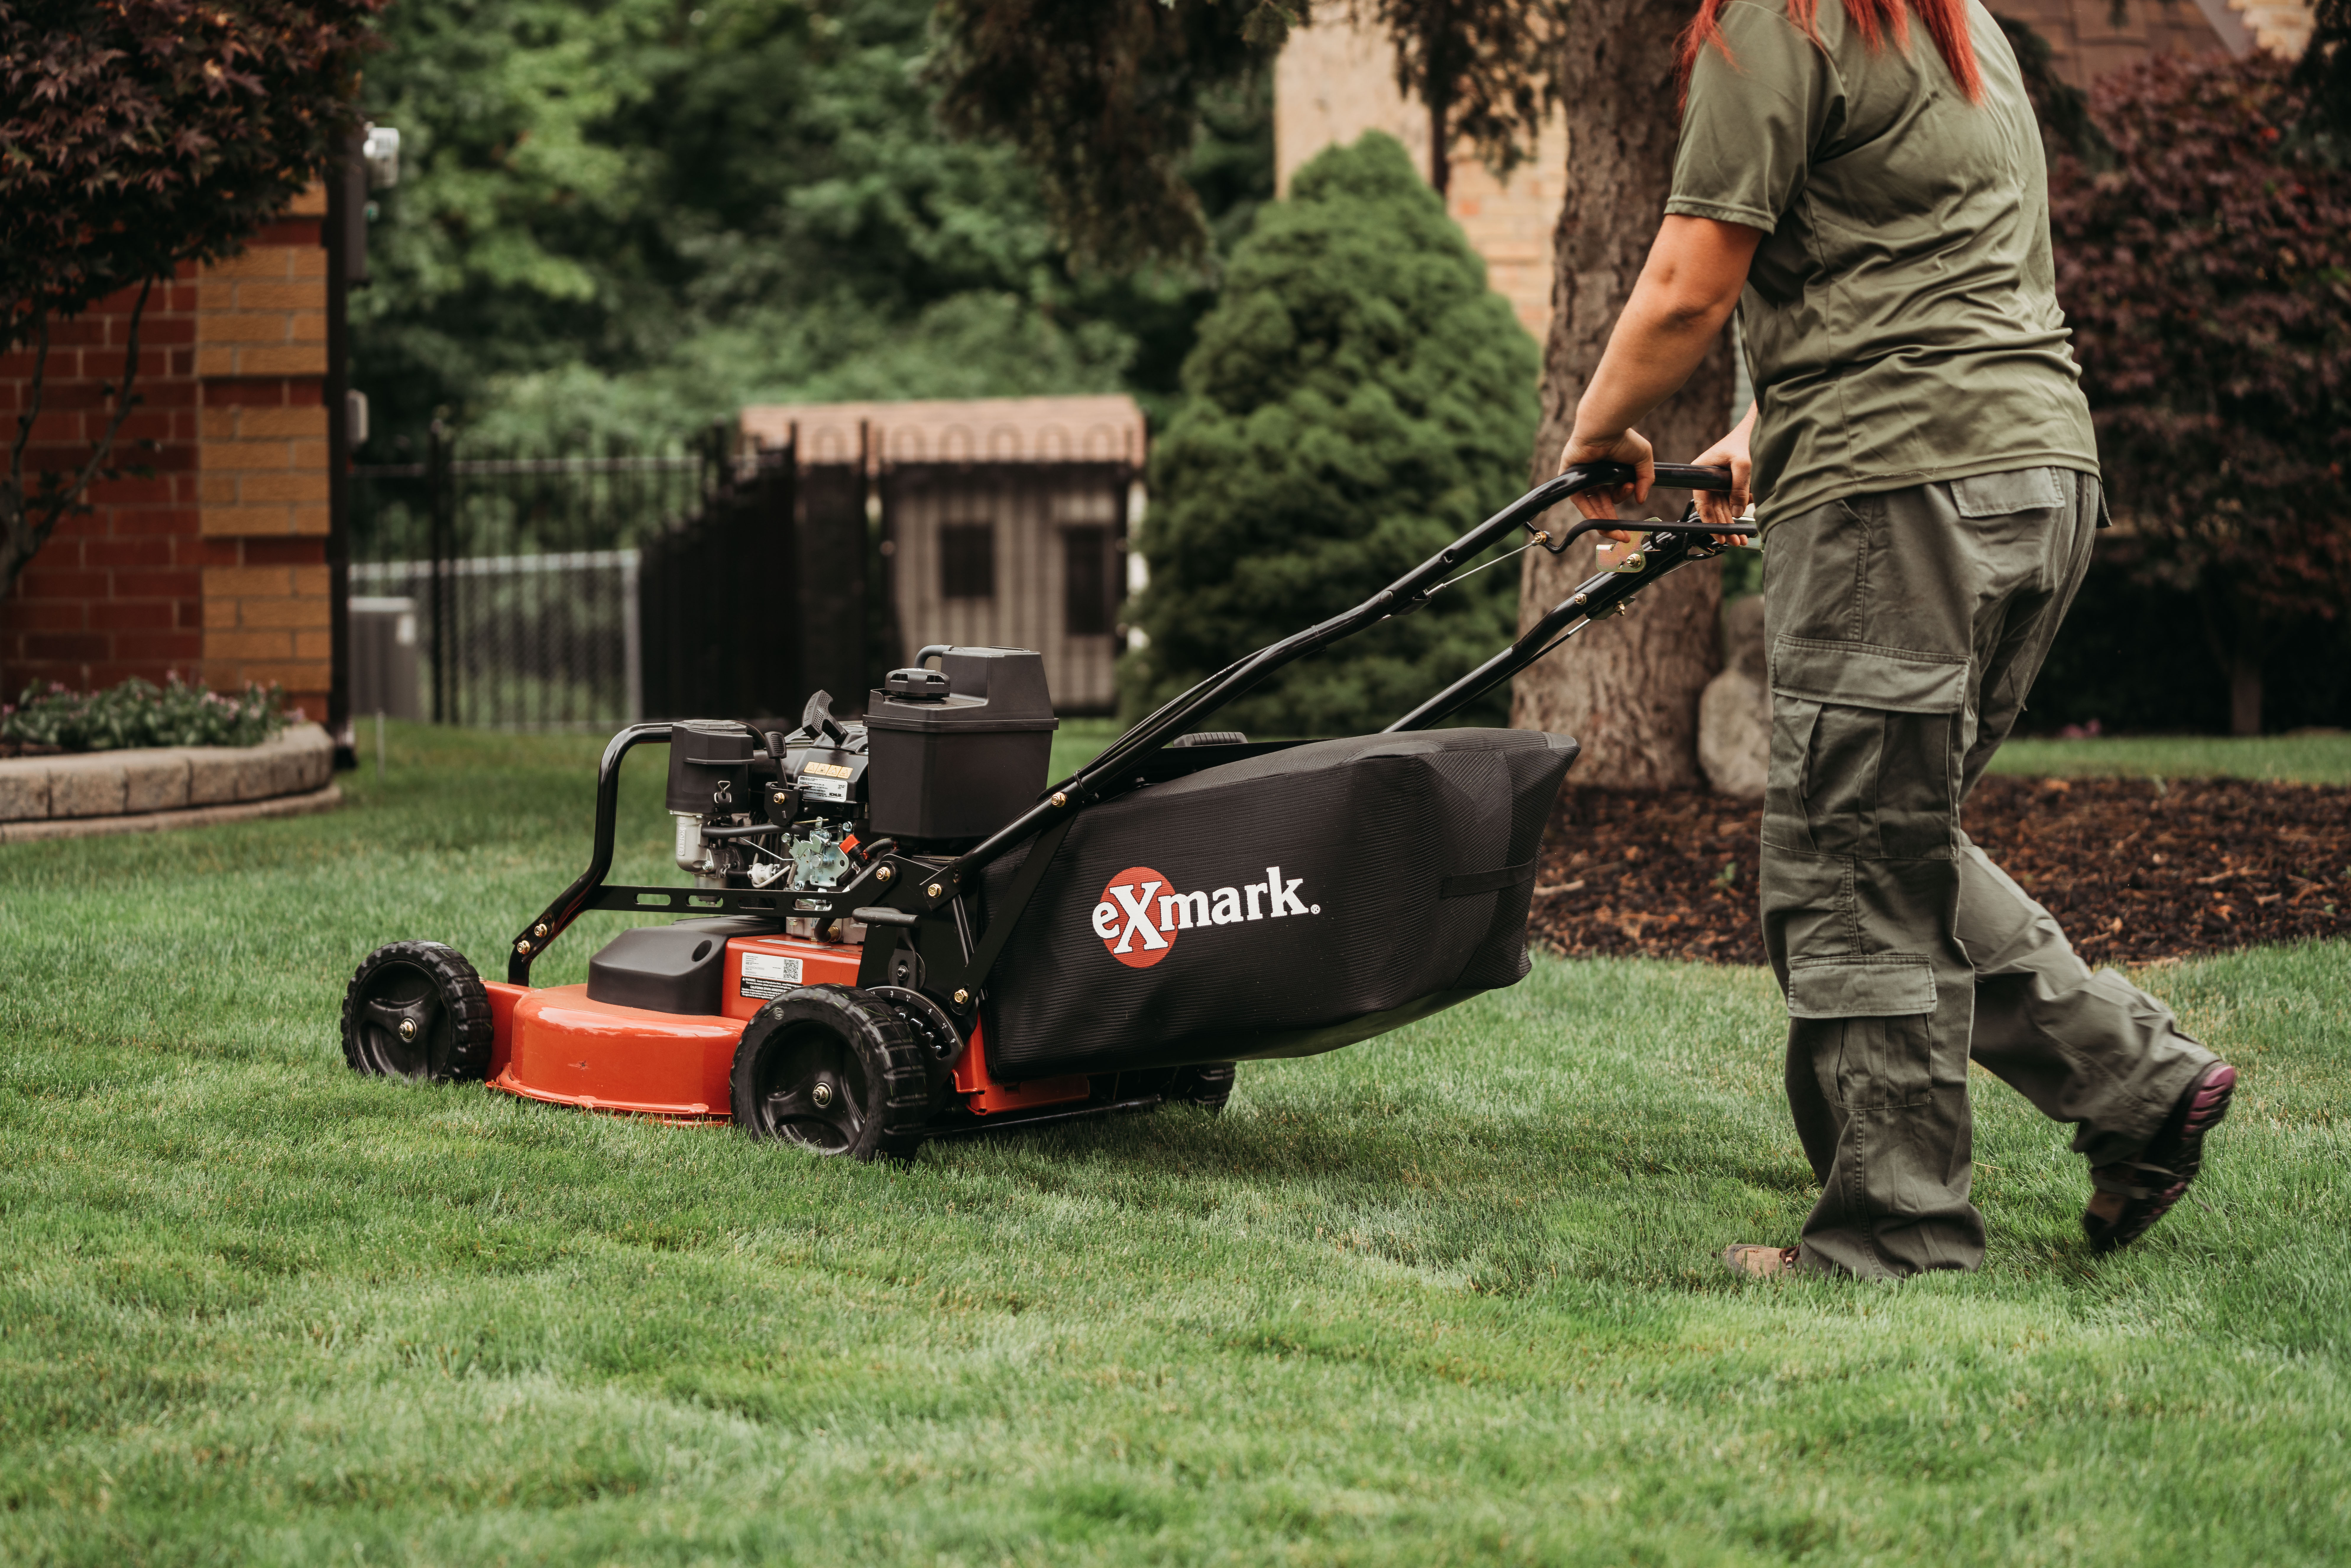 The Benefits of Hiring a Lawn Mowing Services Company This Season